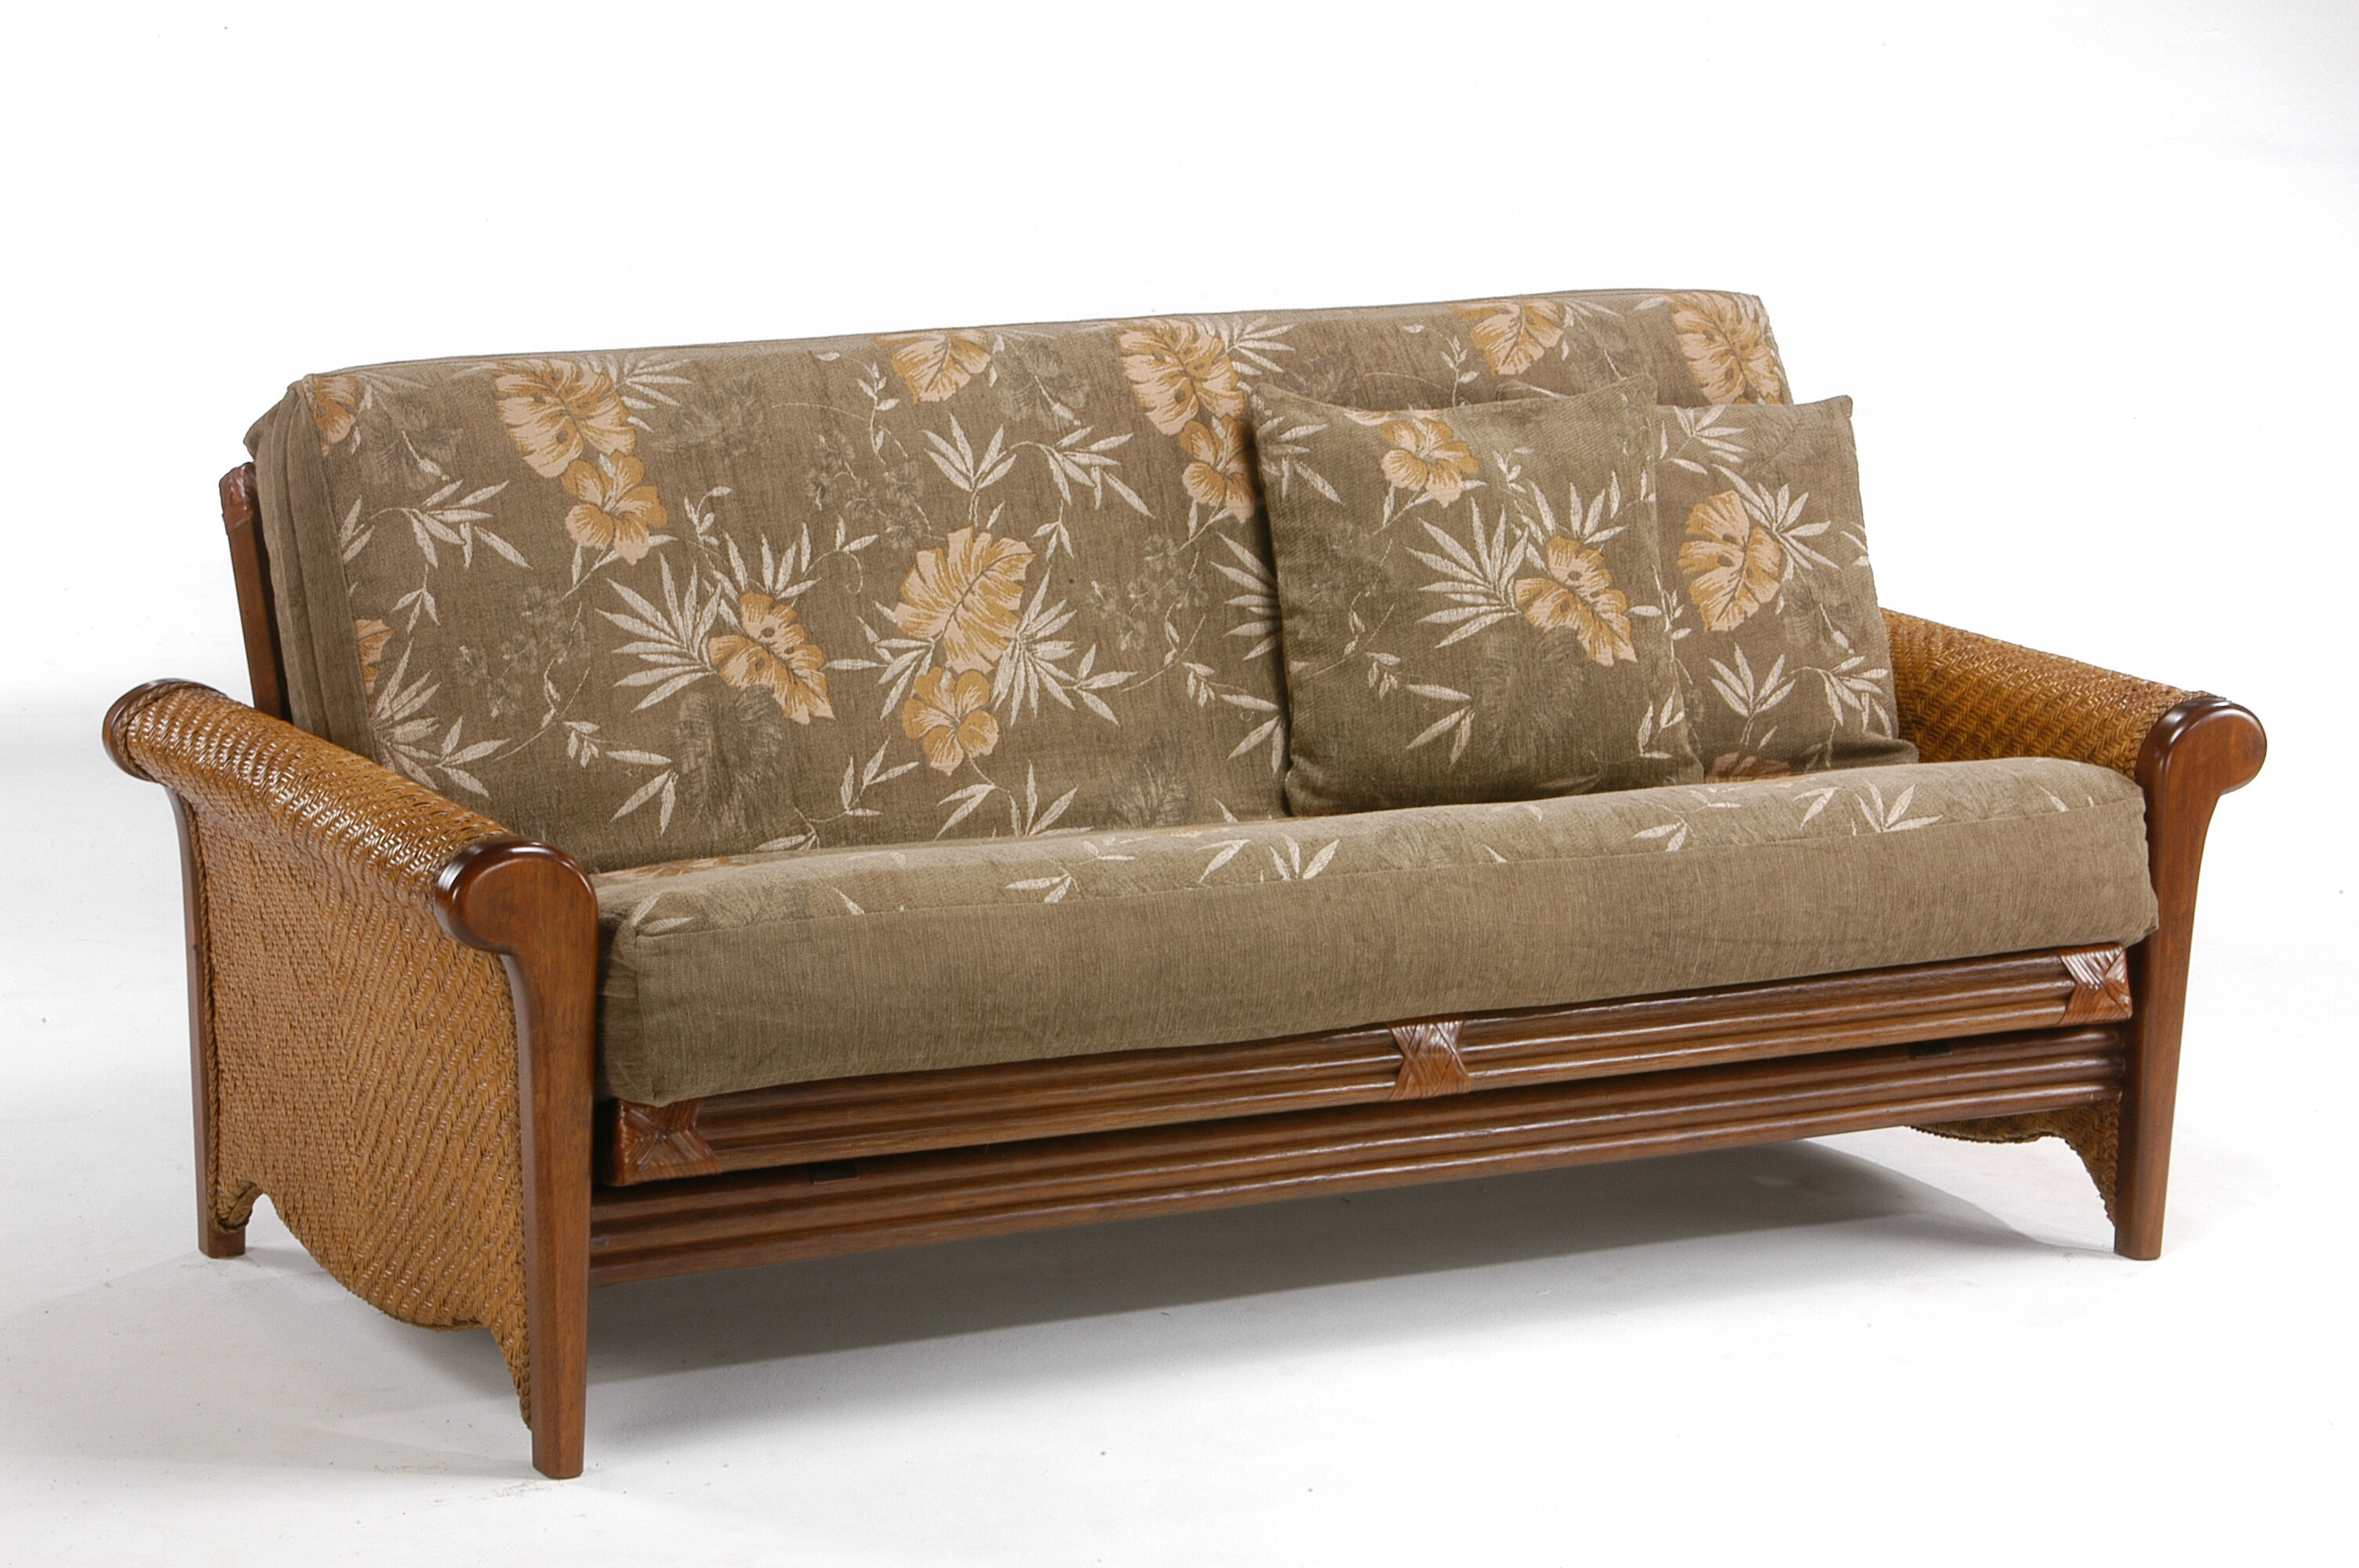 Rosebud Frame Home Futon City